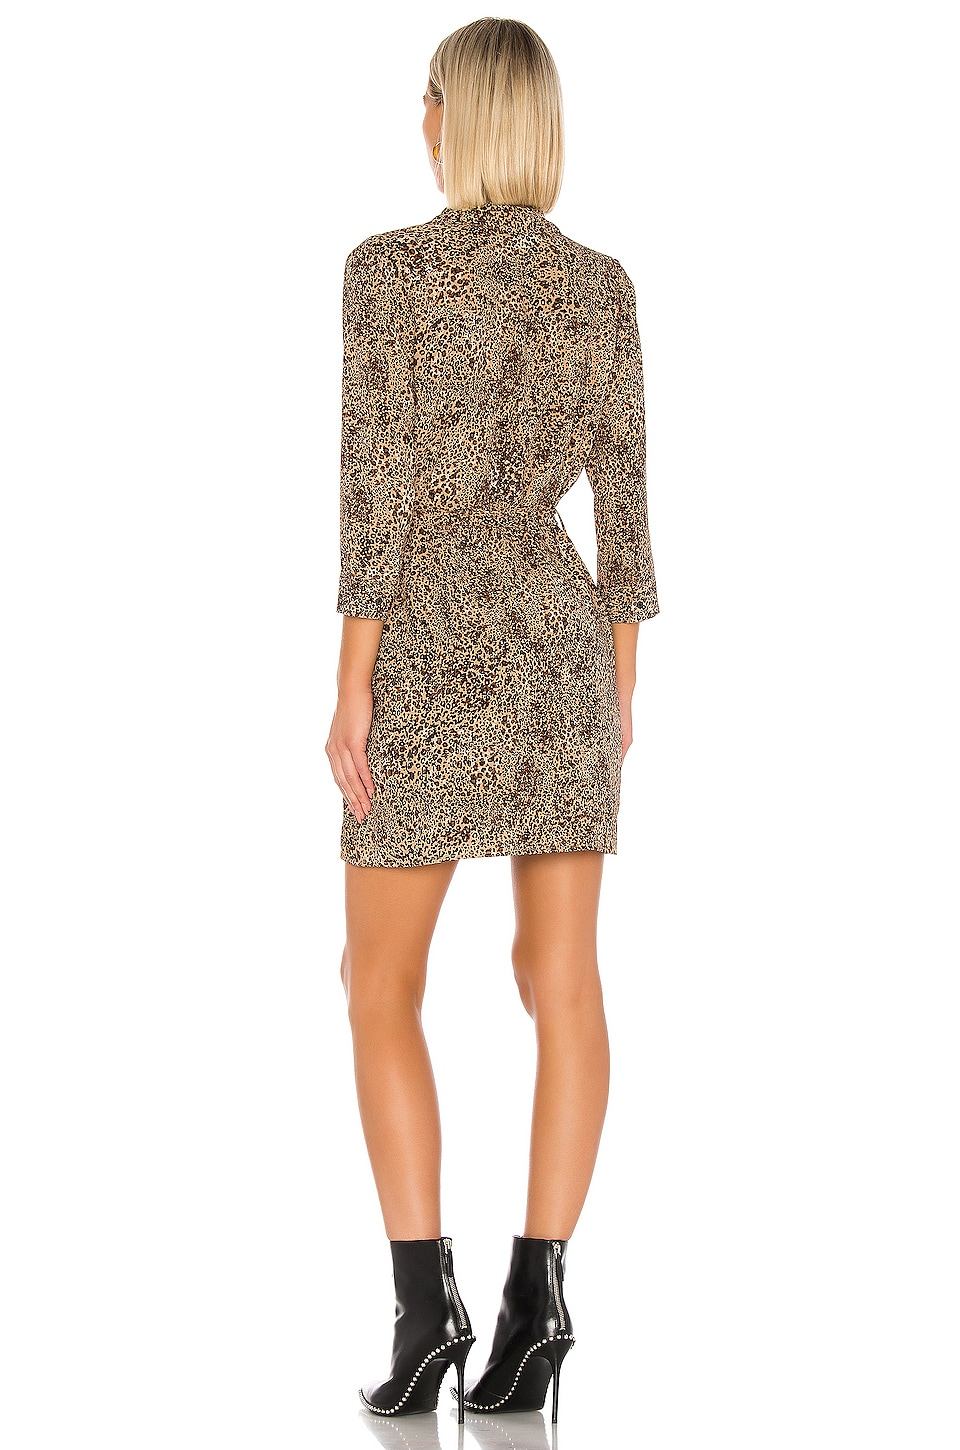 Leopard Muse Patch Pocket Shirt Dress, view 3, click to view large image.